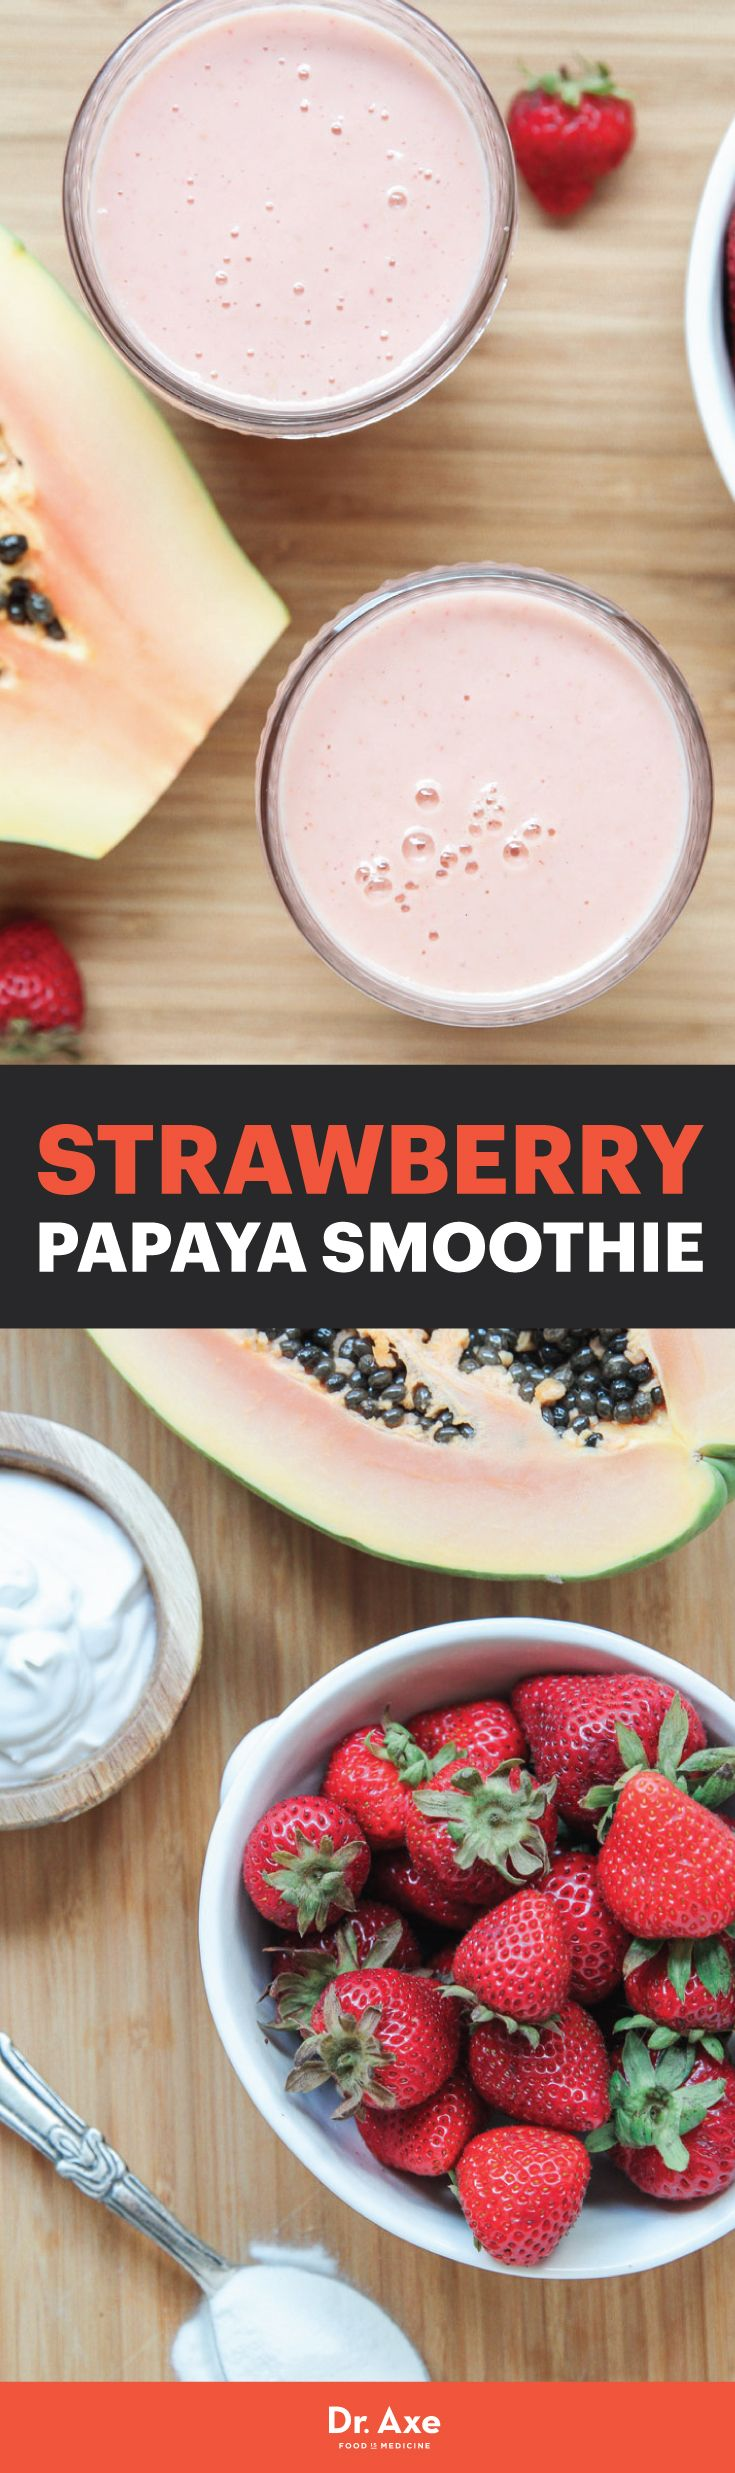 Cool off with a Strawberry Papaya Smoothie - It's great for your gut health!